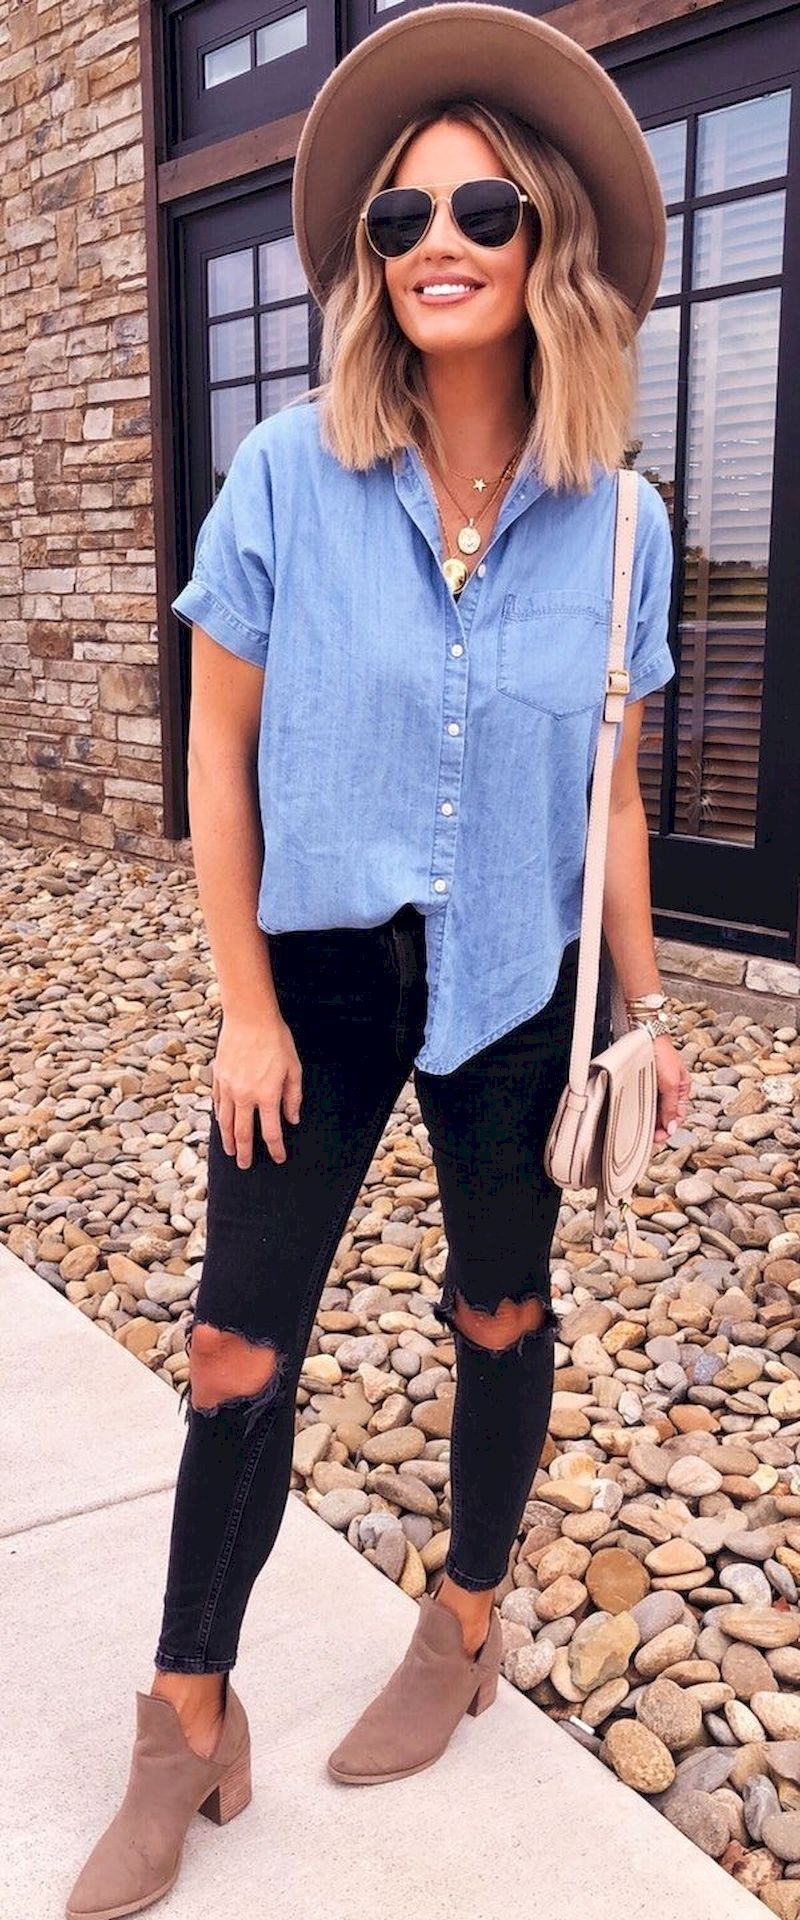 fashion - 44 Top Trending Outfits for Summer Street Style